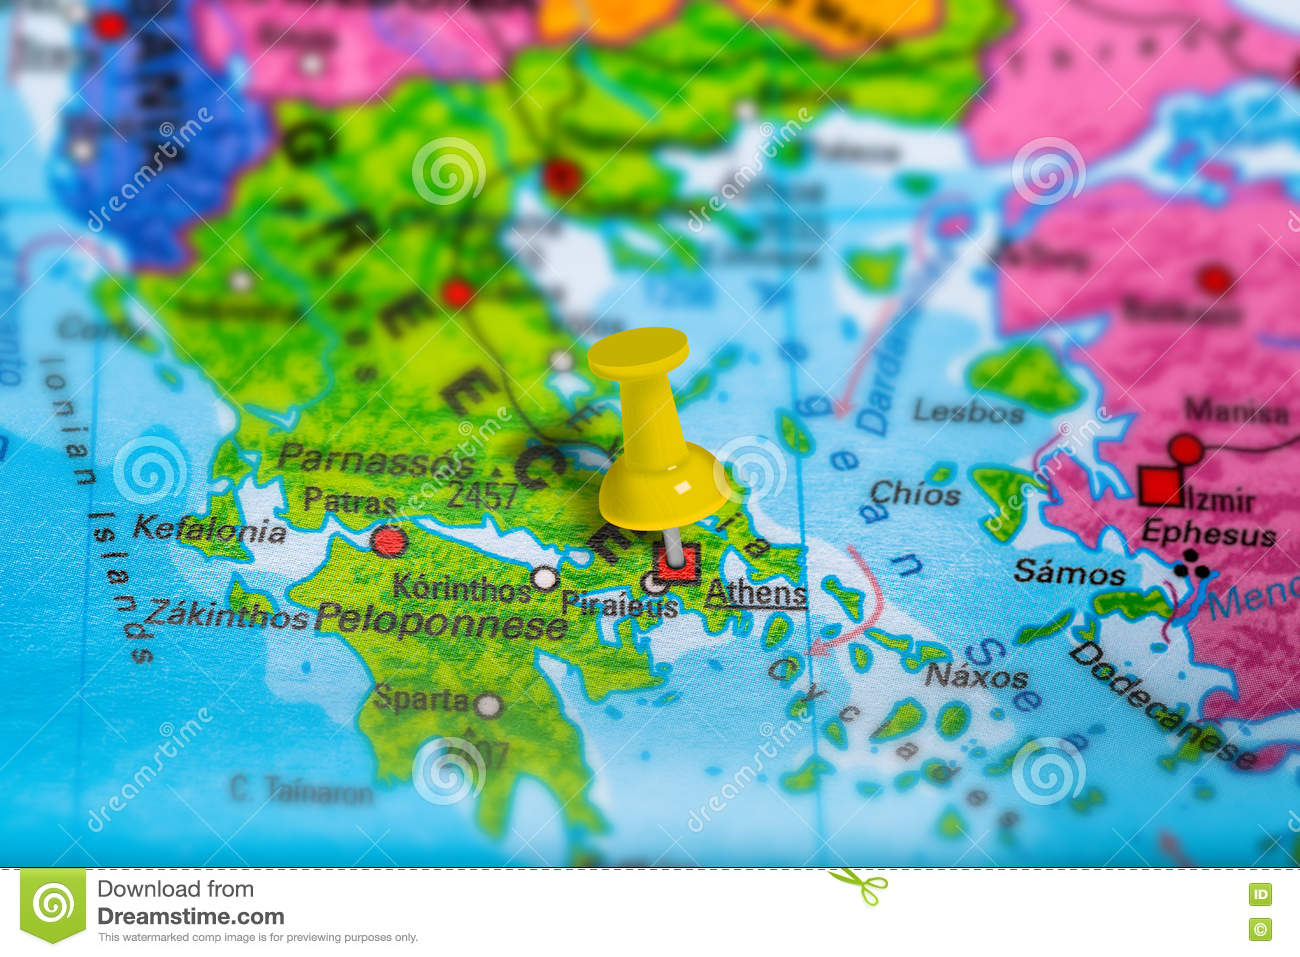 Athens Greece Map Stock Photo Image Of Destination Colorful 80955468